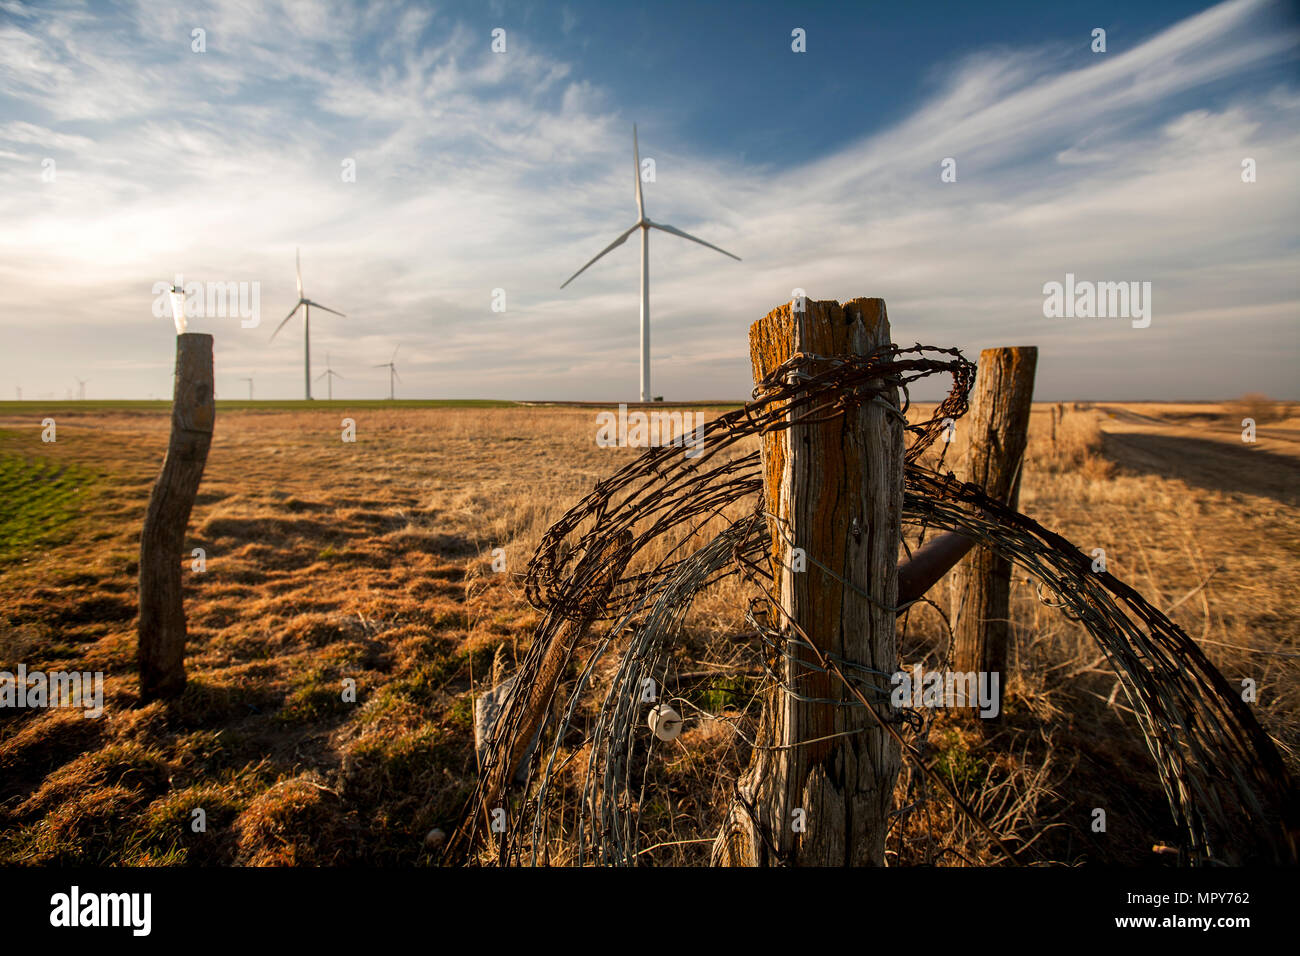 Barbed wire on wooden fence against wind turbines and cloudy sky Stock Photo